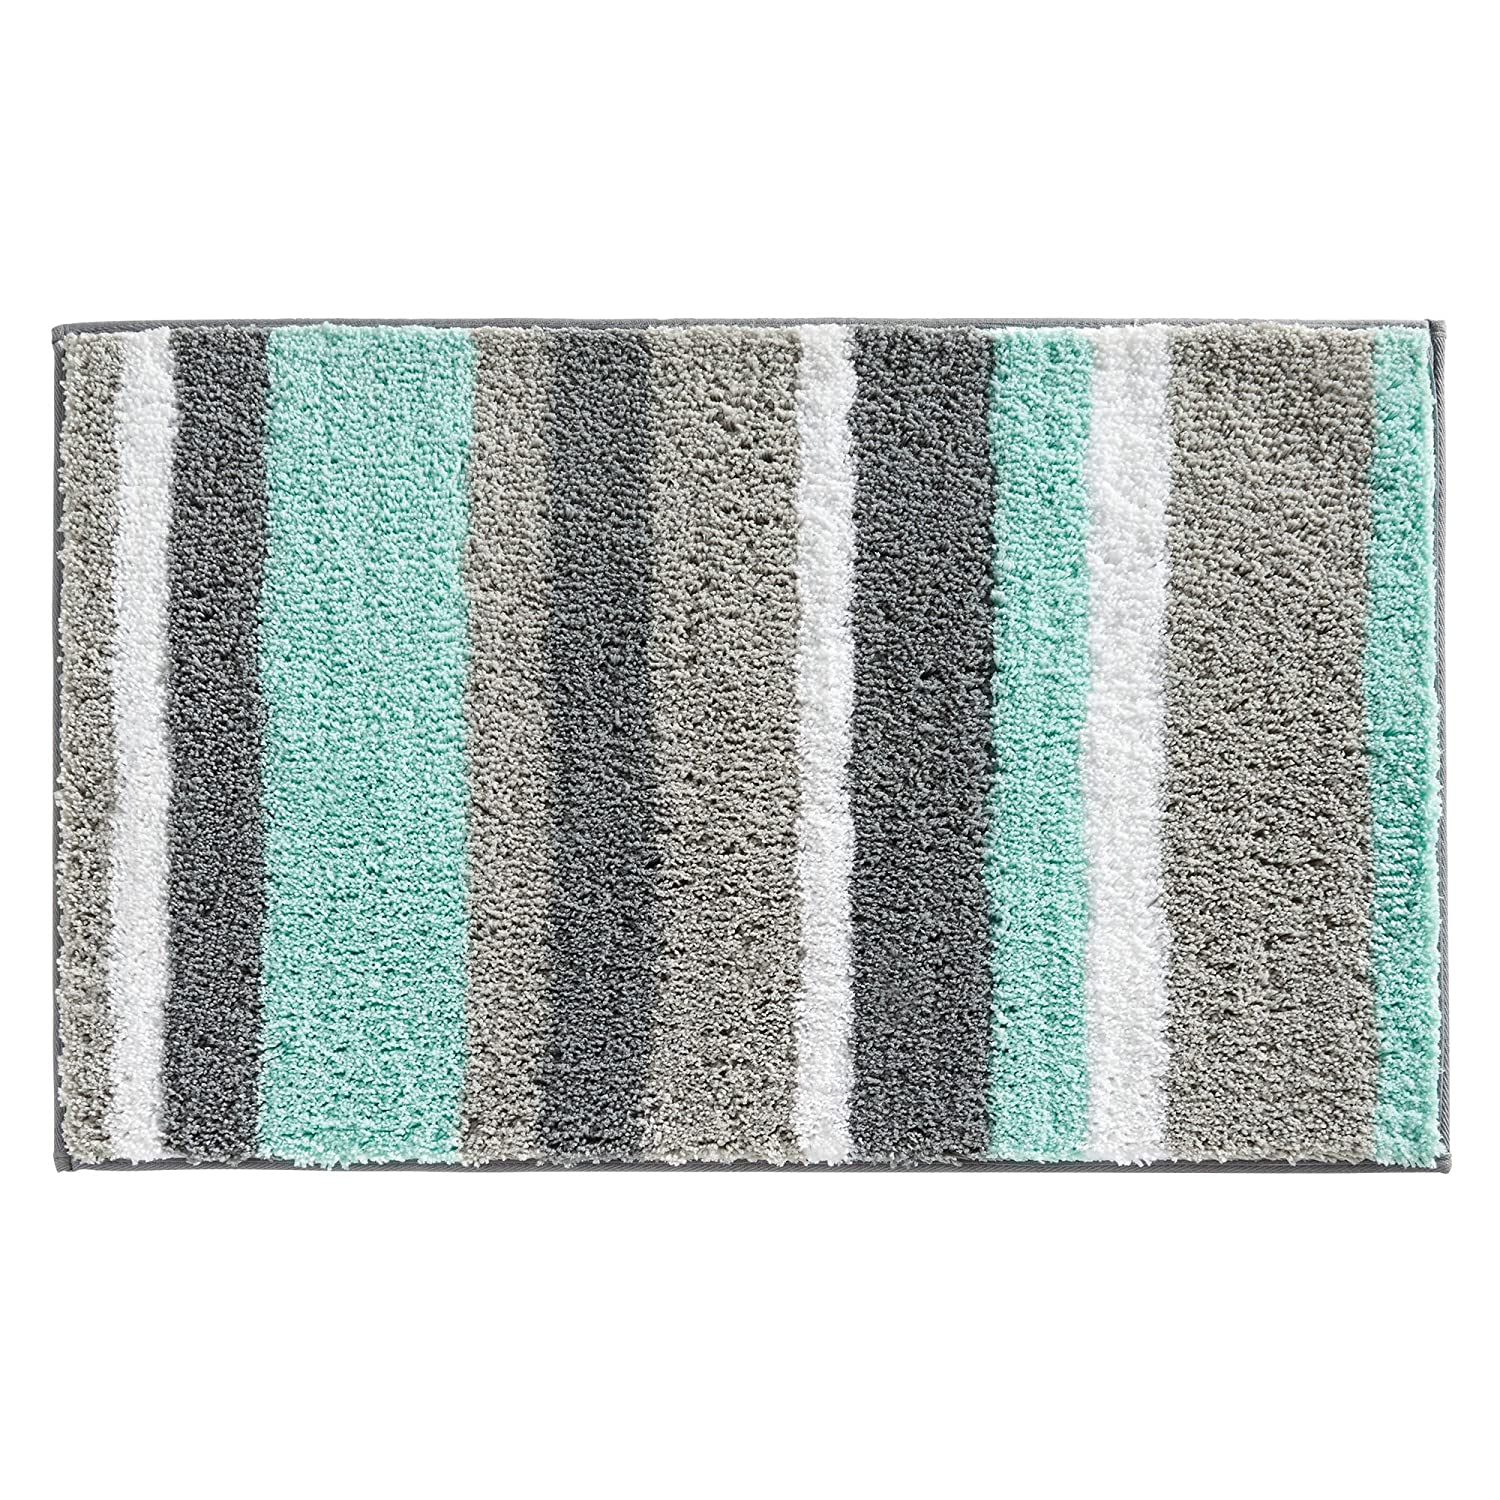 Stripz Bath Rug, Machine Washable Microfiber Accent Rug for Bathroom, Kitchen, Bedroom, Office, Kid's Room